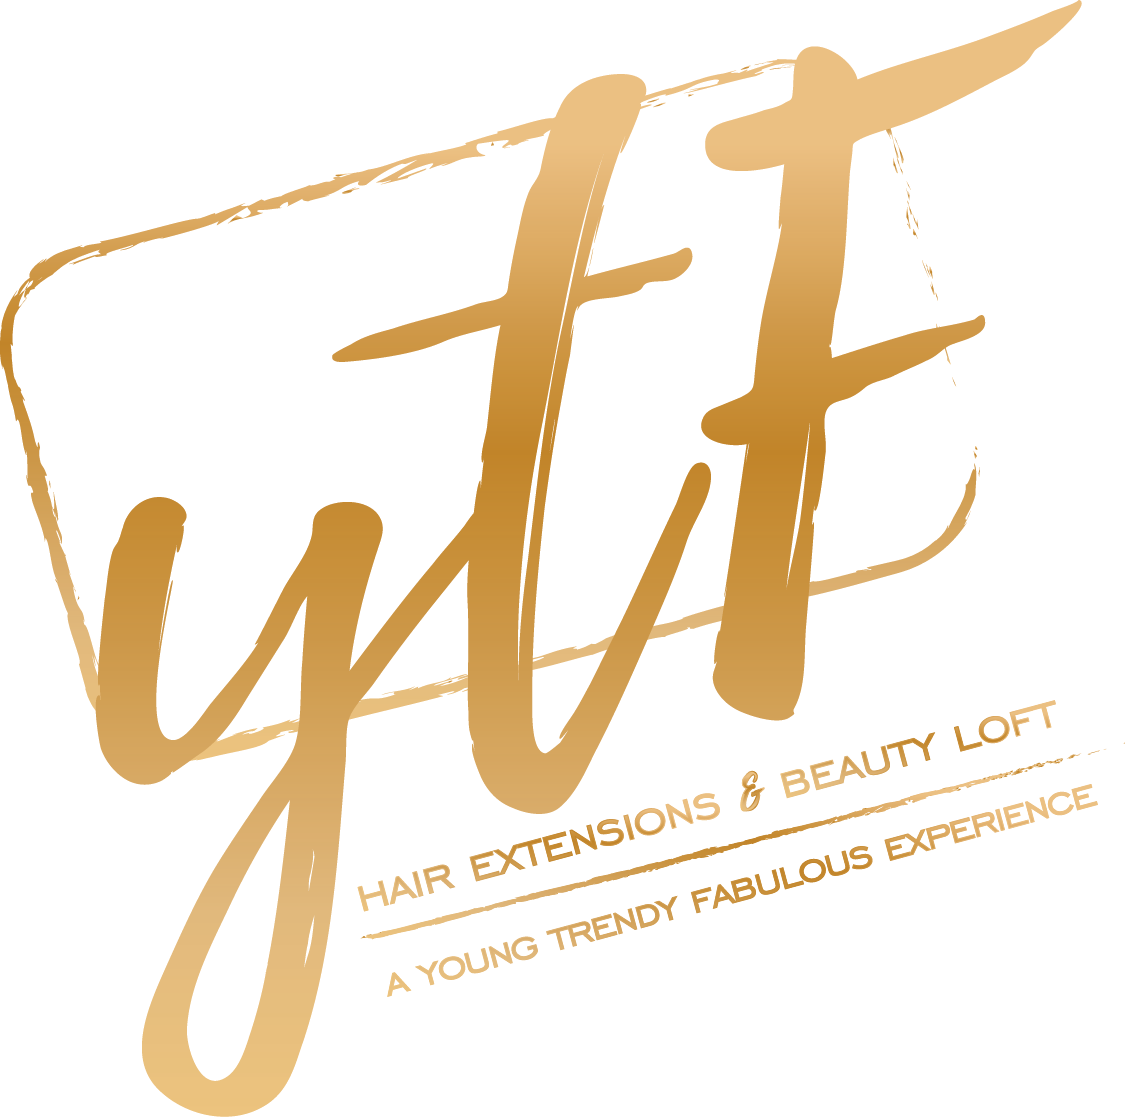 Book Same Day Hair Extensions For Thin Hair NYC | Color appointment now - YTF Hair Extensions